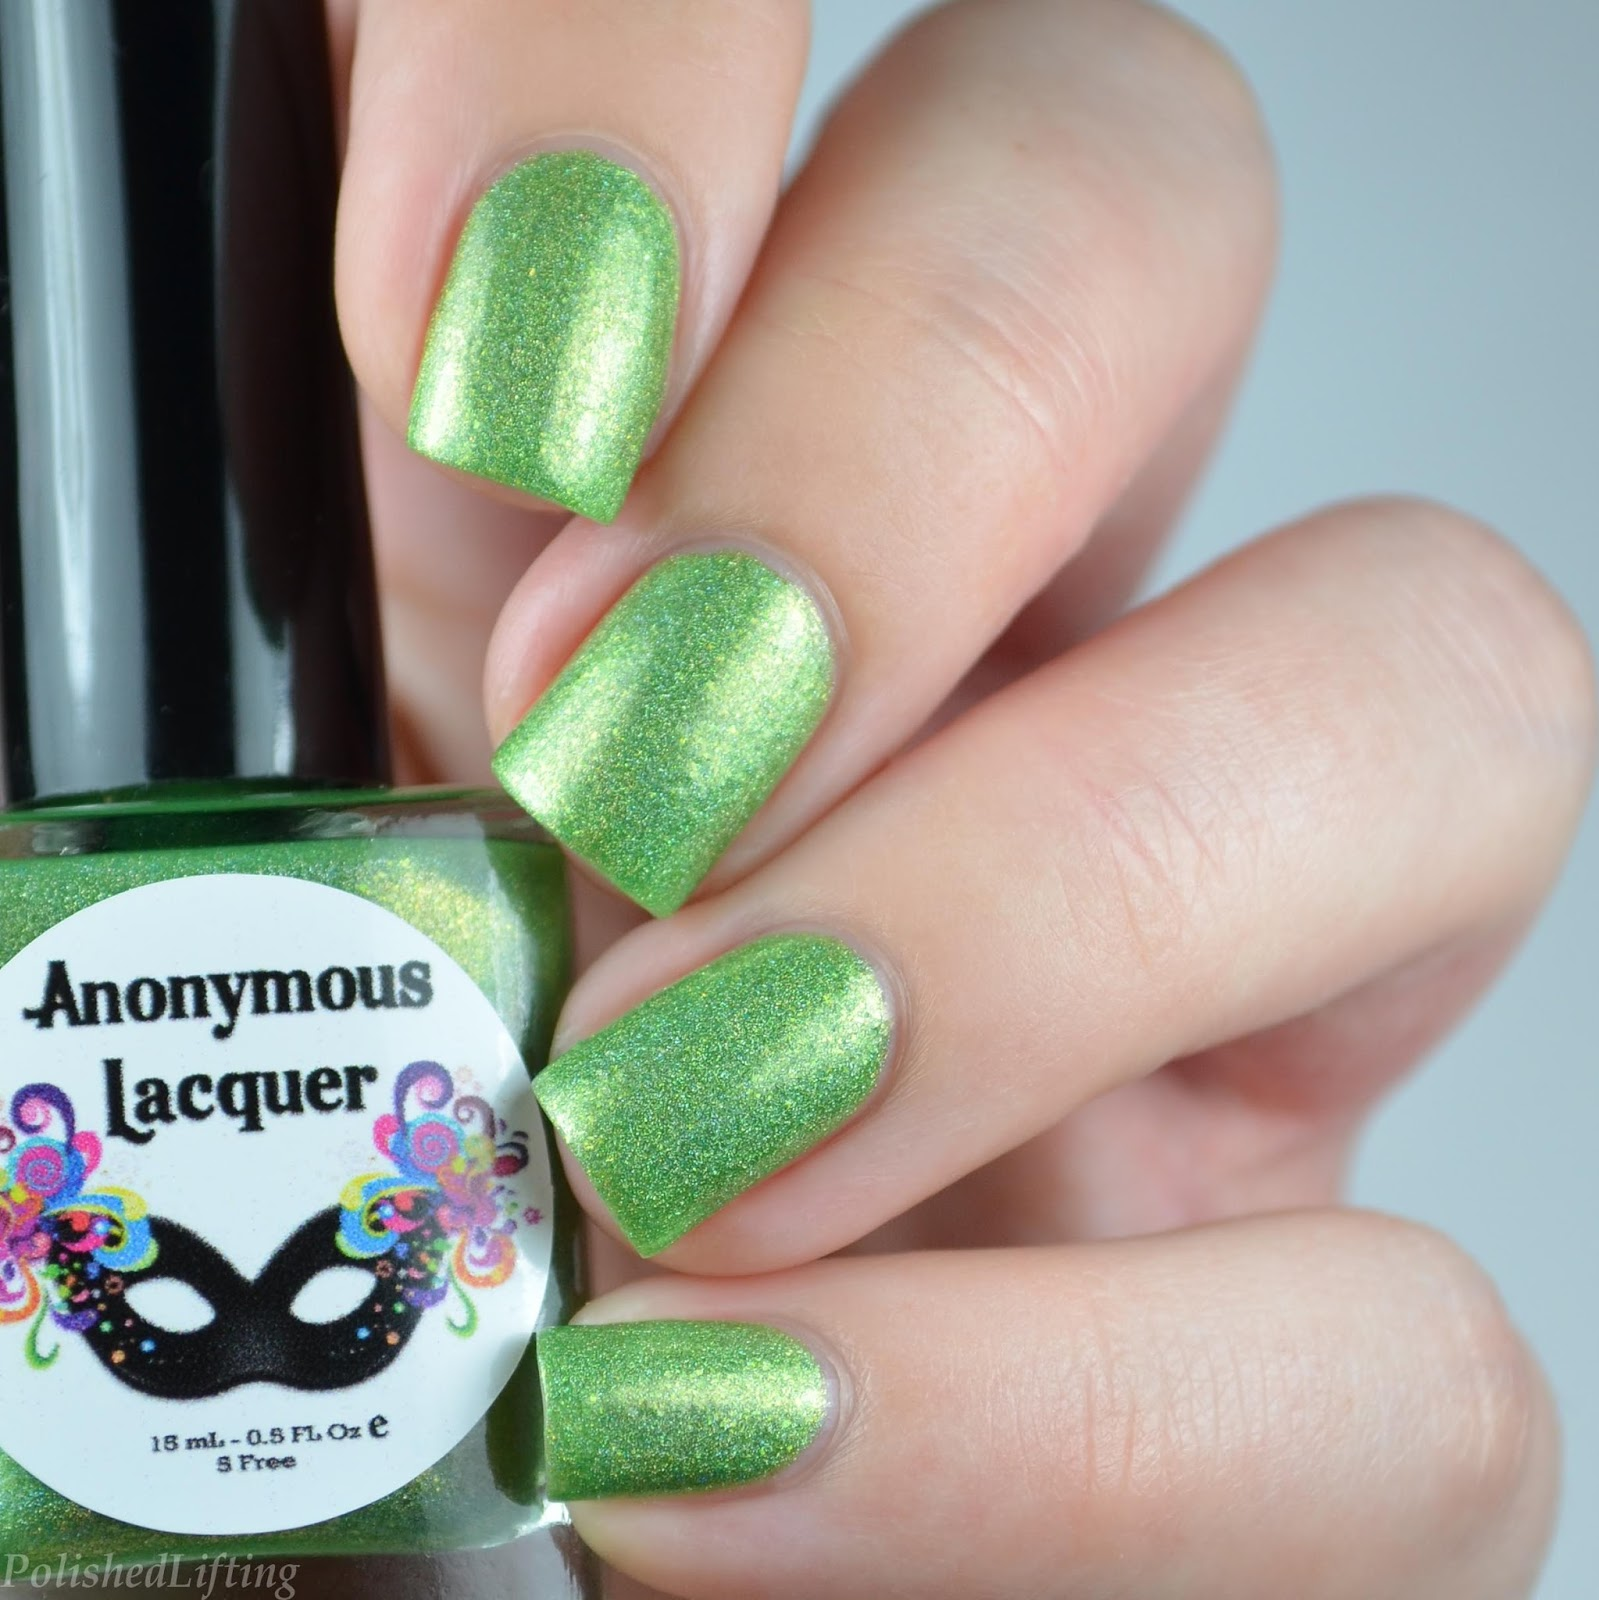 nail polish swatch - Polished Lifting: Frankenstein Halloween Nail Art Featuring